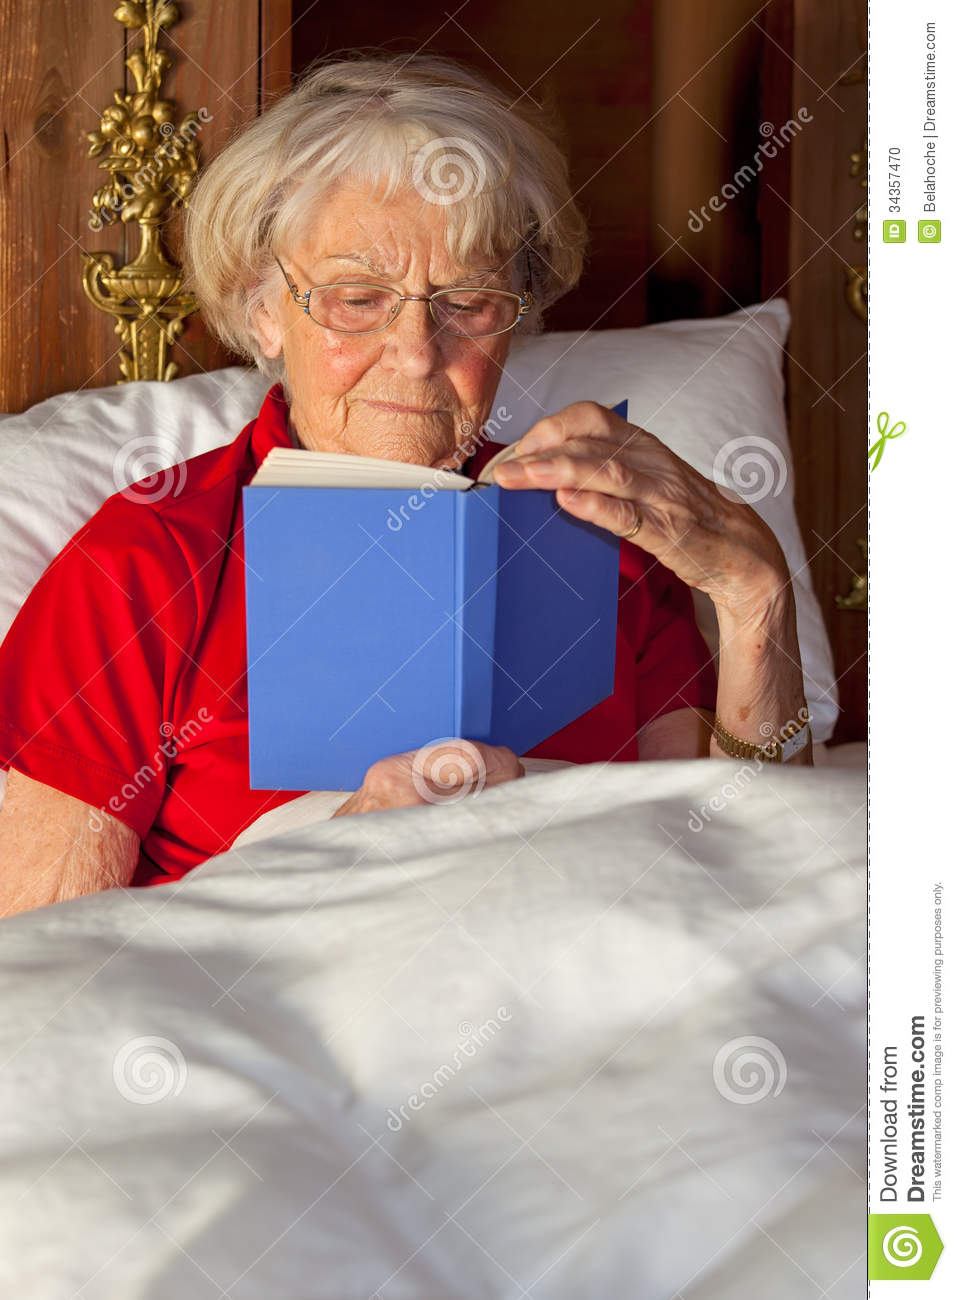 Elderly Woman Reading In Bed Stock Photo Image Of Elderly